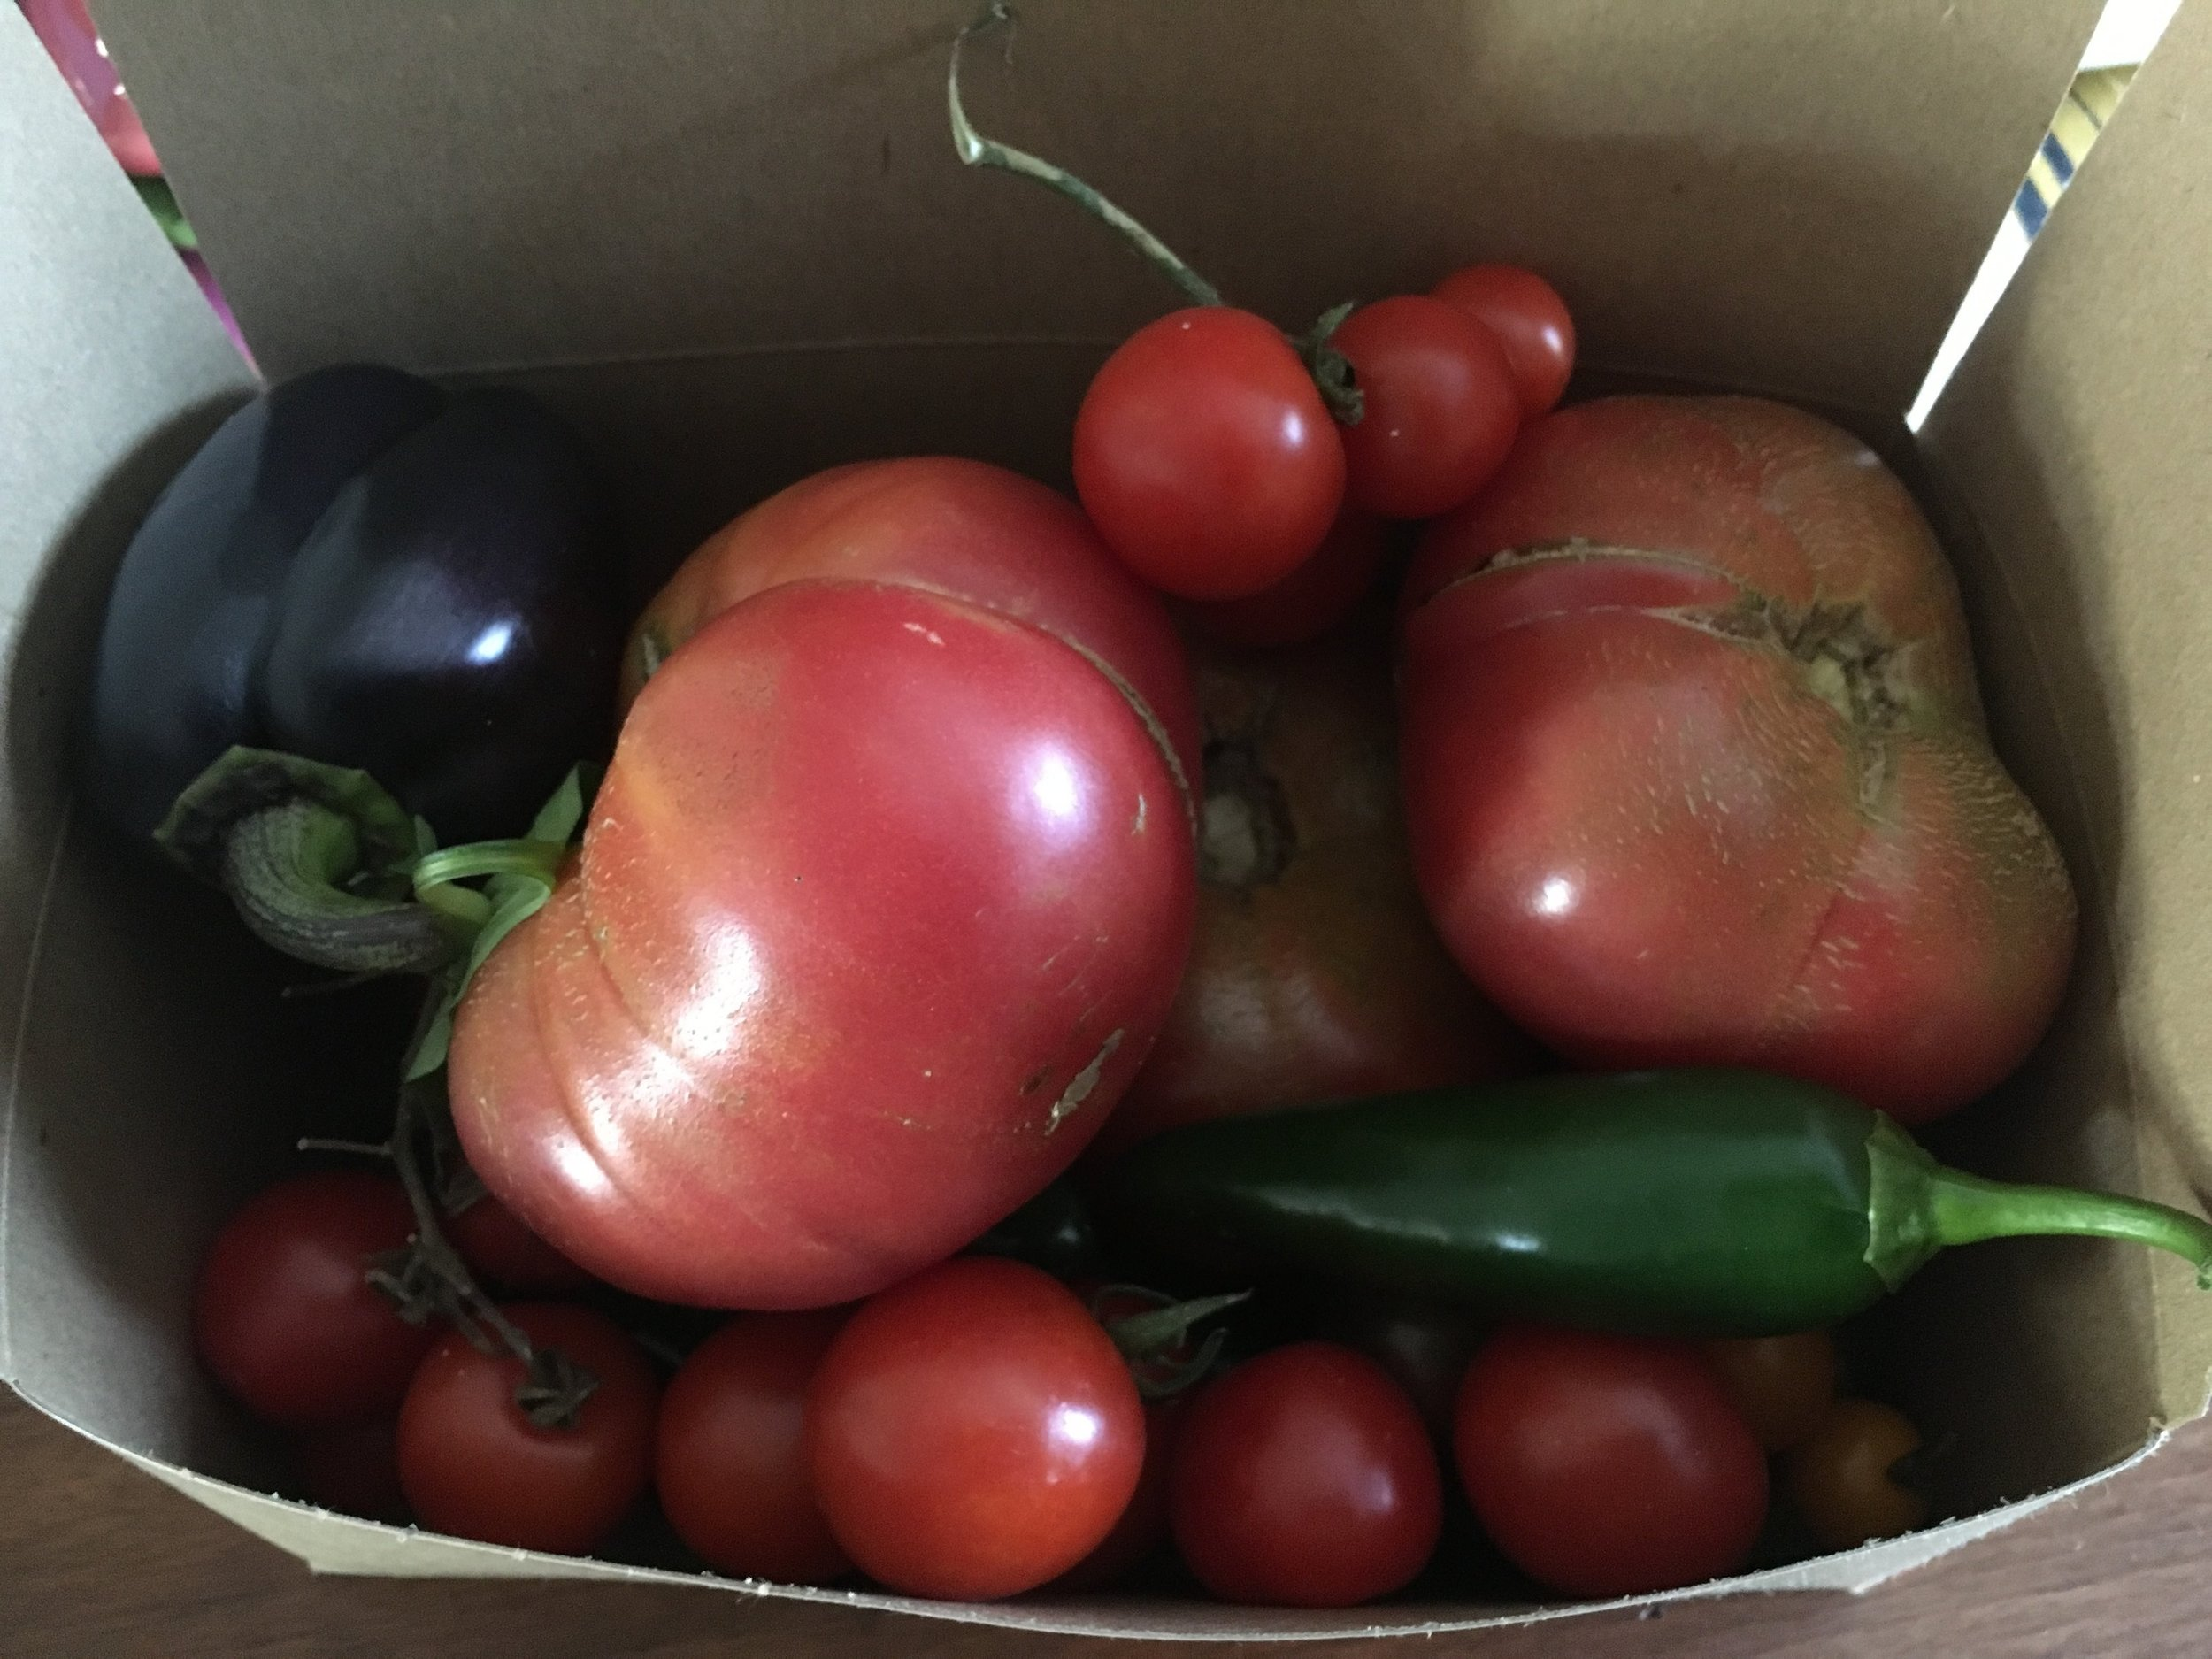 Interviewing gardeners has its perks: I went home with a package full of beautiful and fresh heirloom tomatoes, peppers and squash.